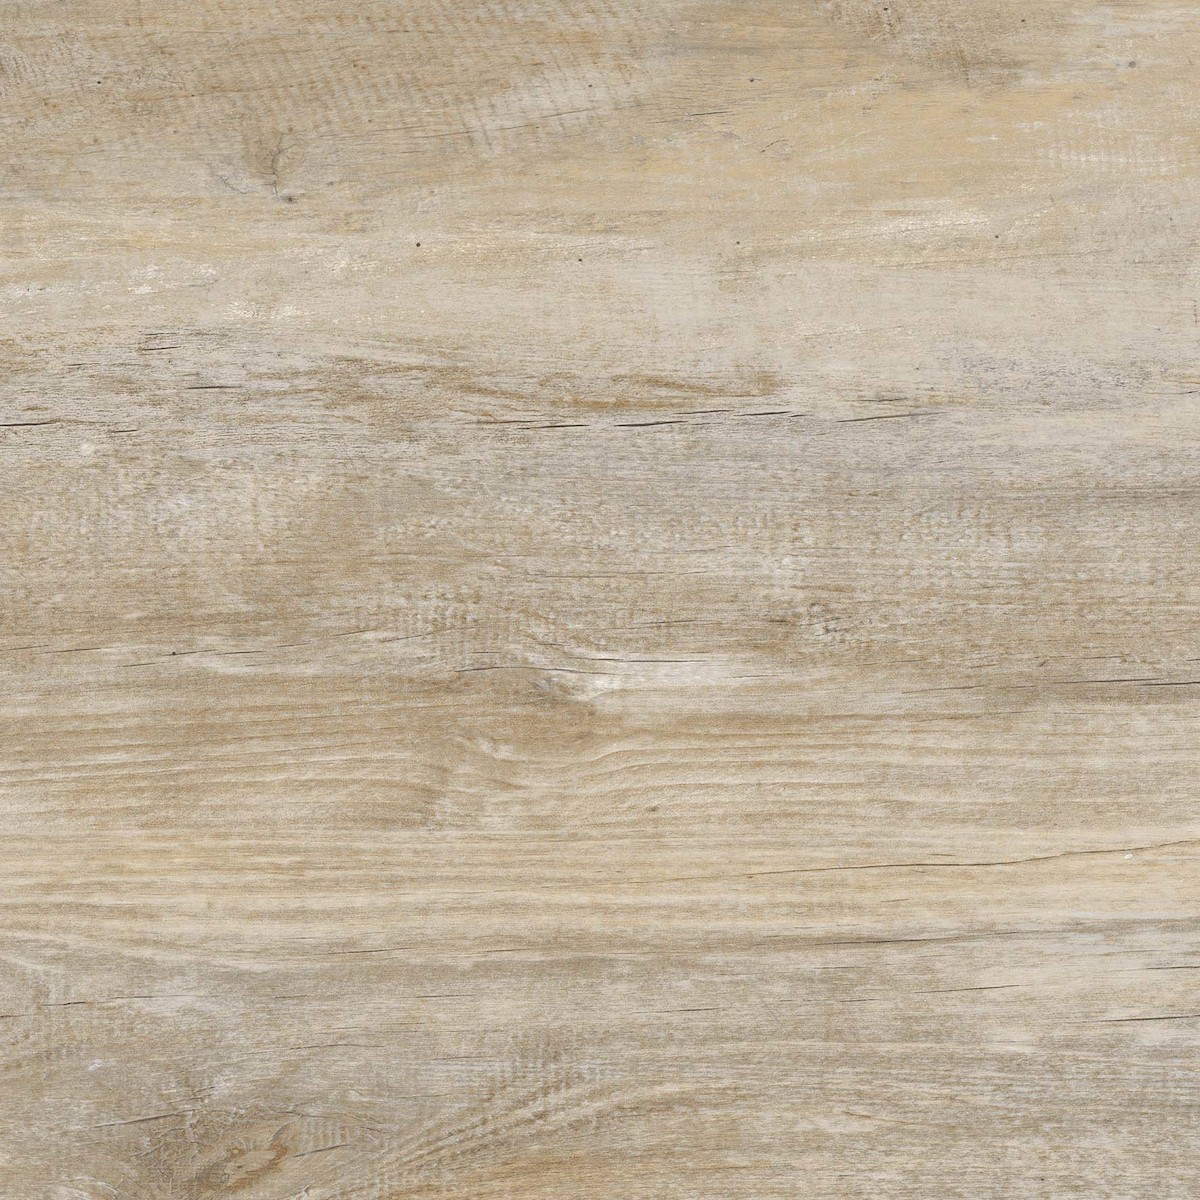 2cm dlažba Sintesi Timber S tortora 60x60x2 cm mat 20TIMBER11749R